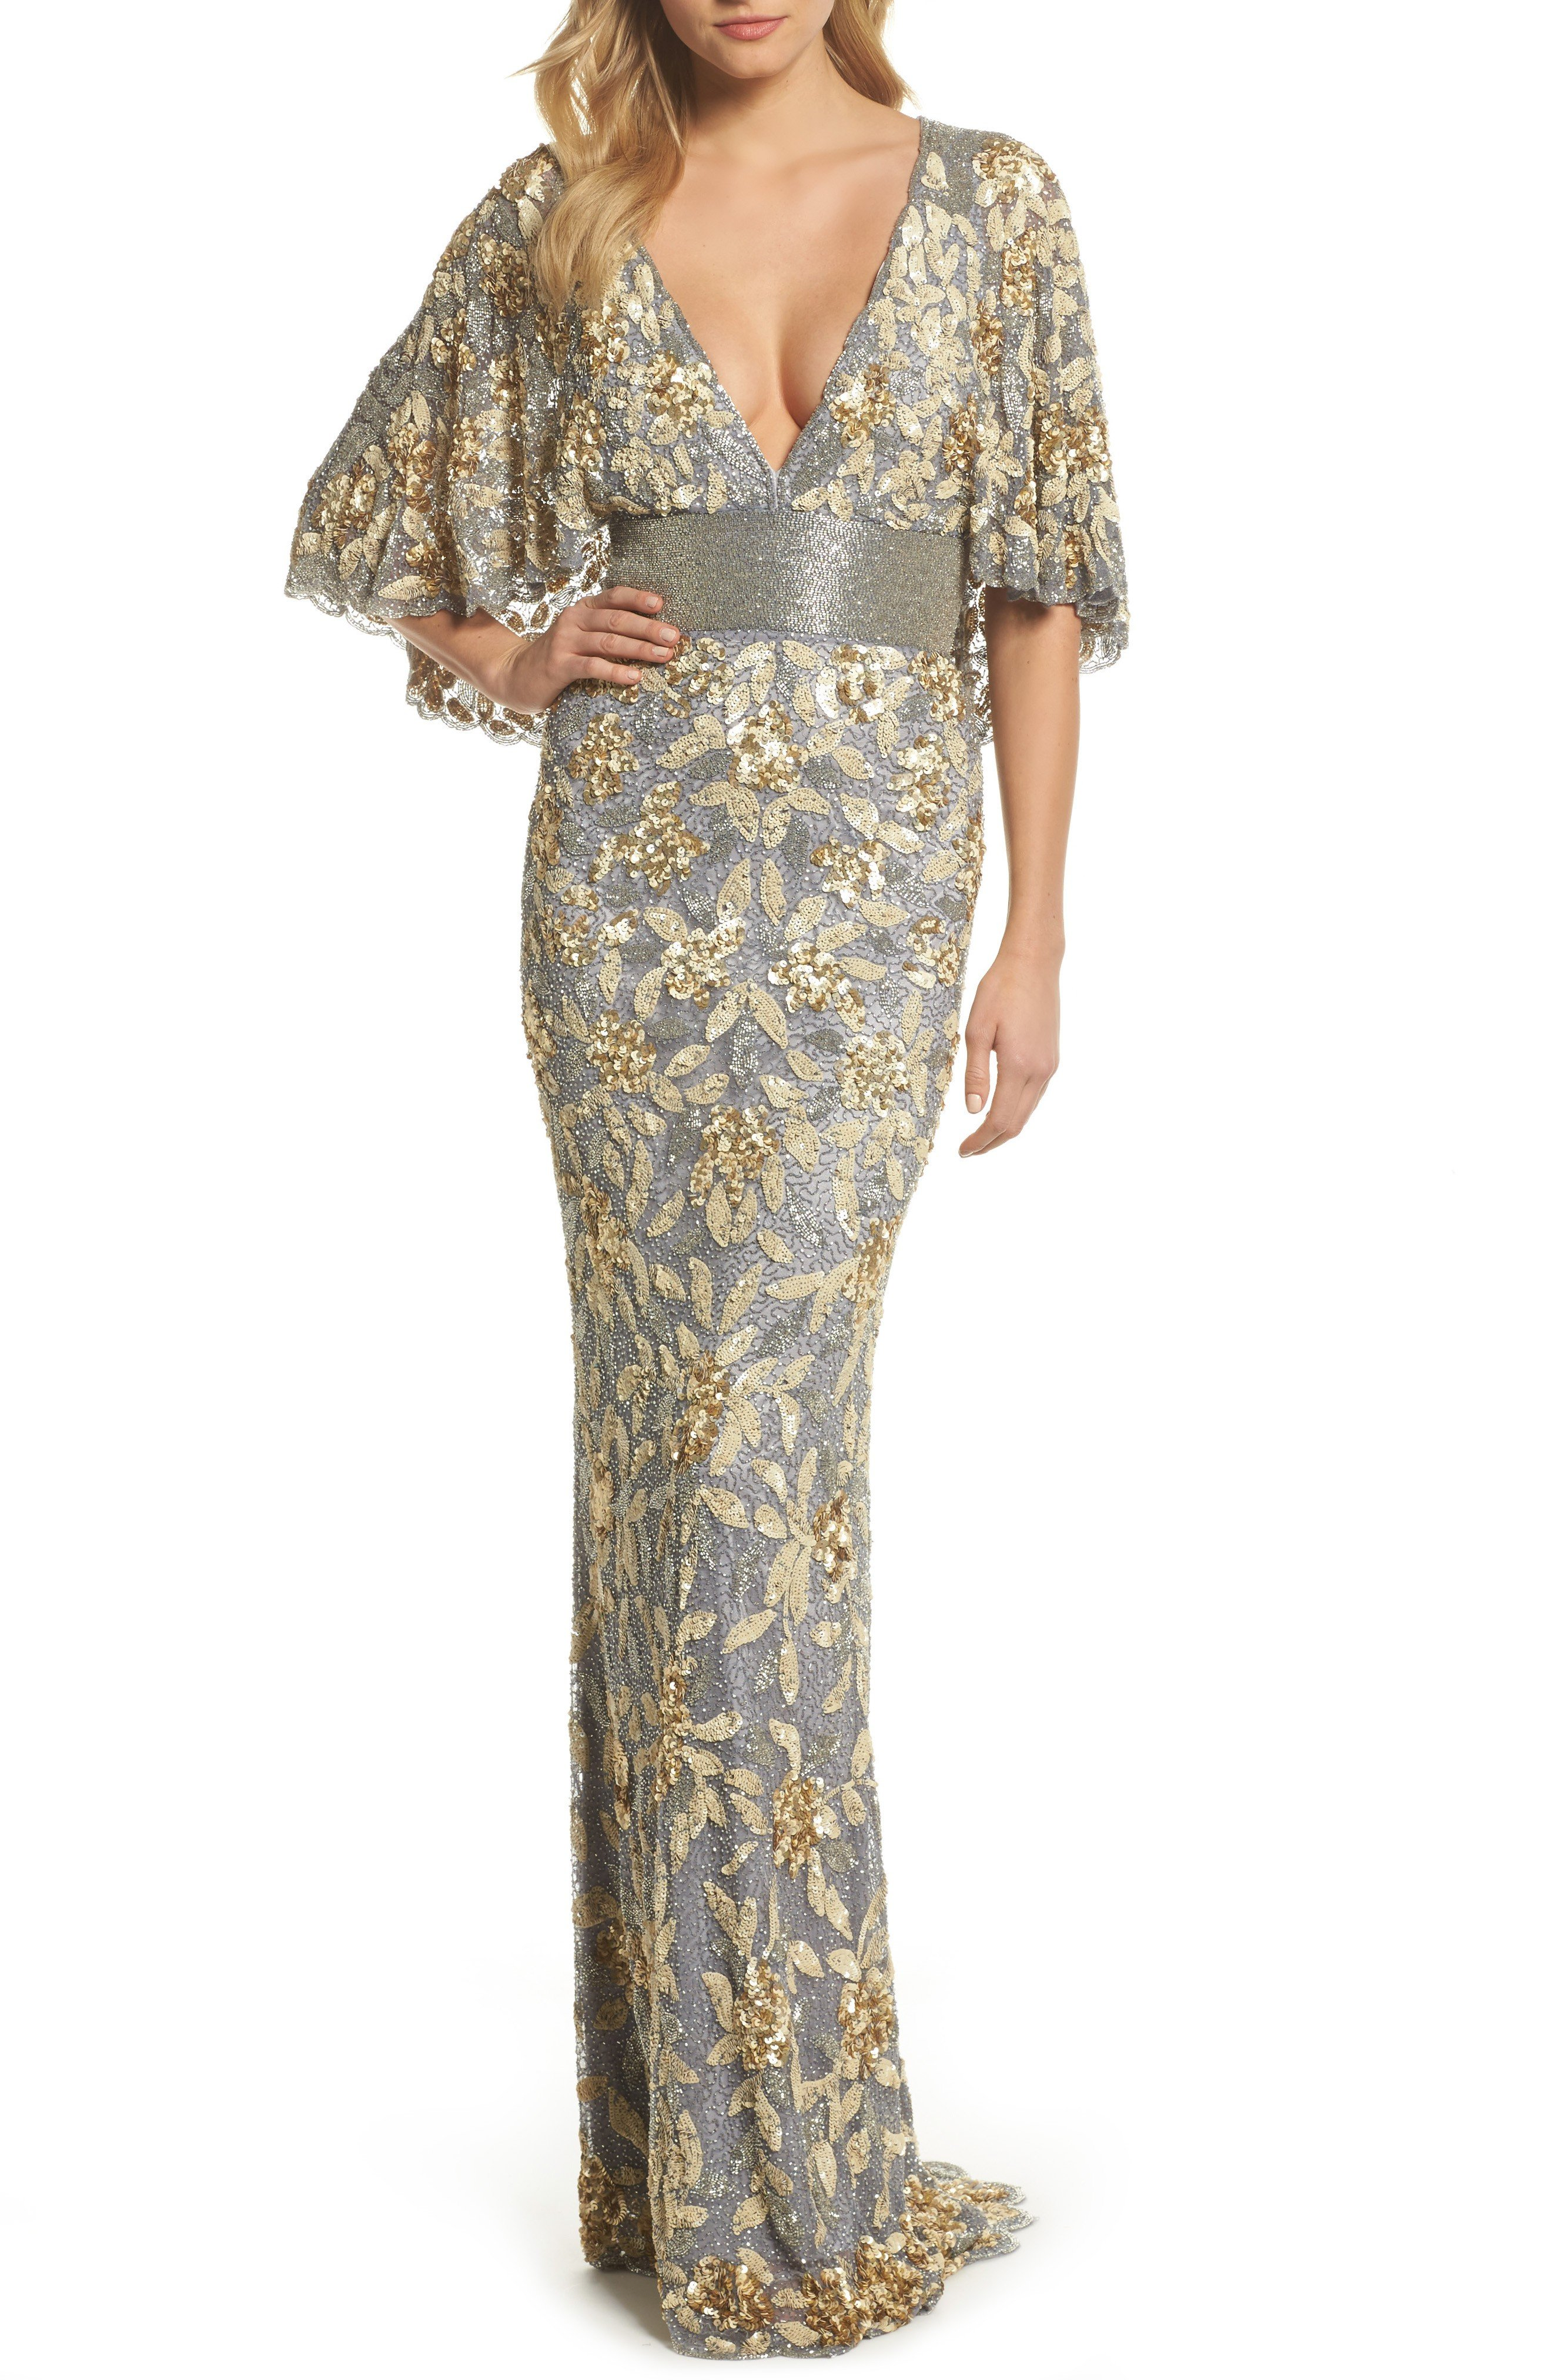 MAC DUGGAL Sequin & Bead Embellished Platinum / Gold Gown